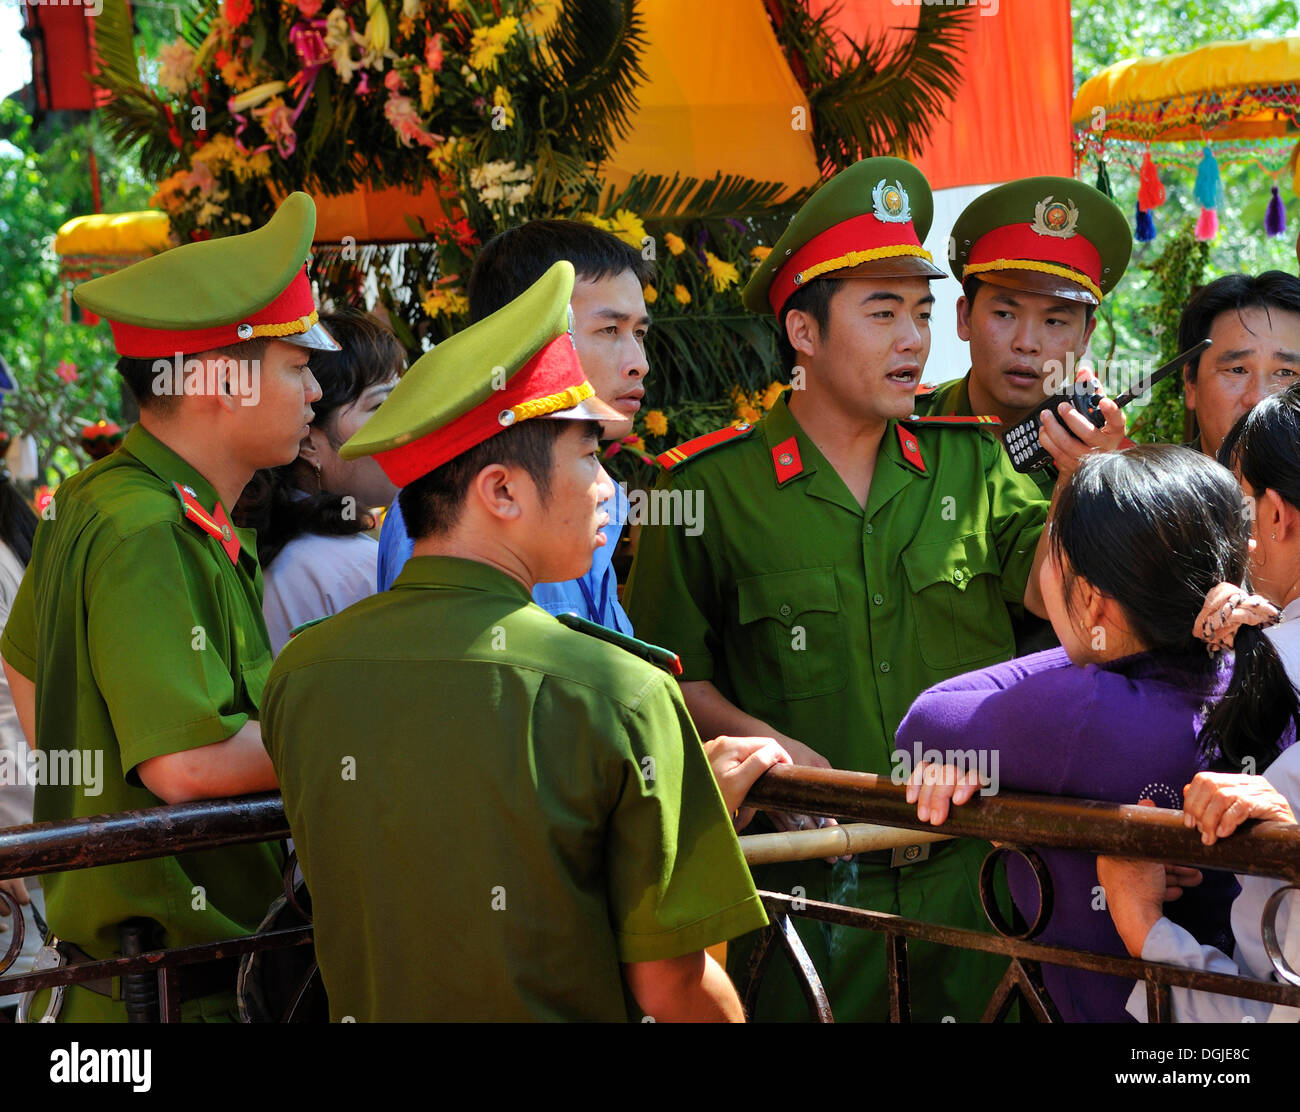 Police officers maintaining order at the largest and most important religious festival of the Cham, Po Nagar Temple, Vietnam - Stock Image